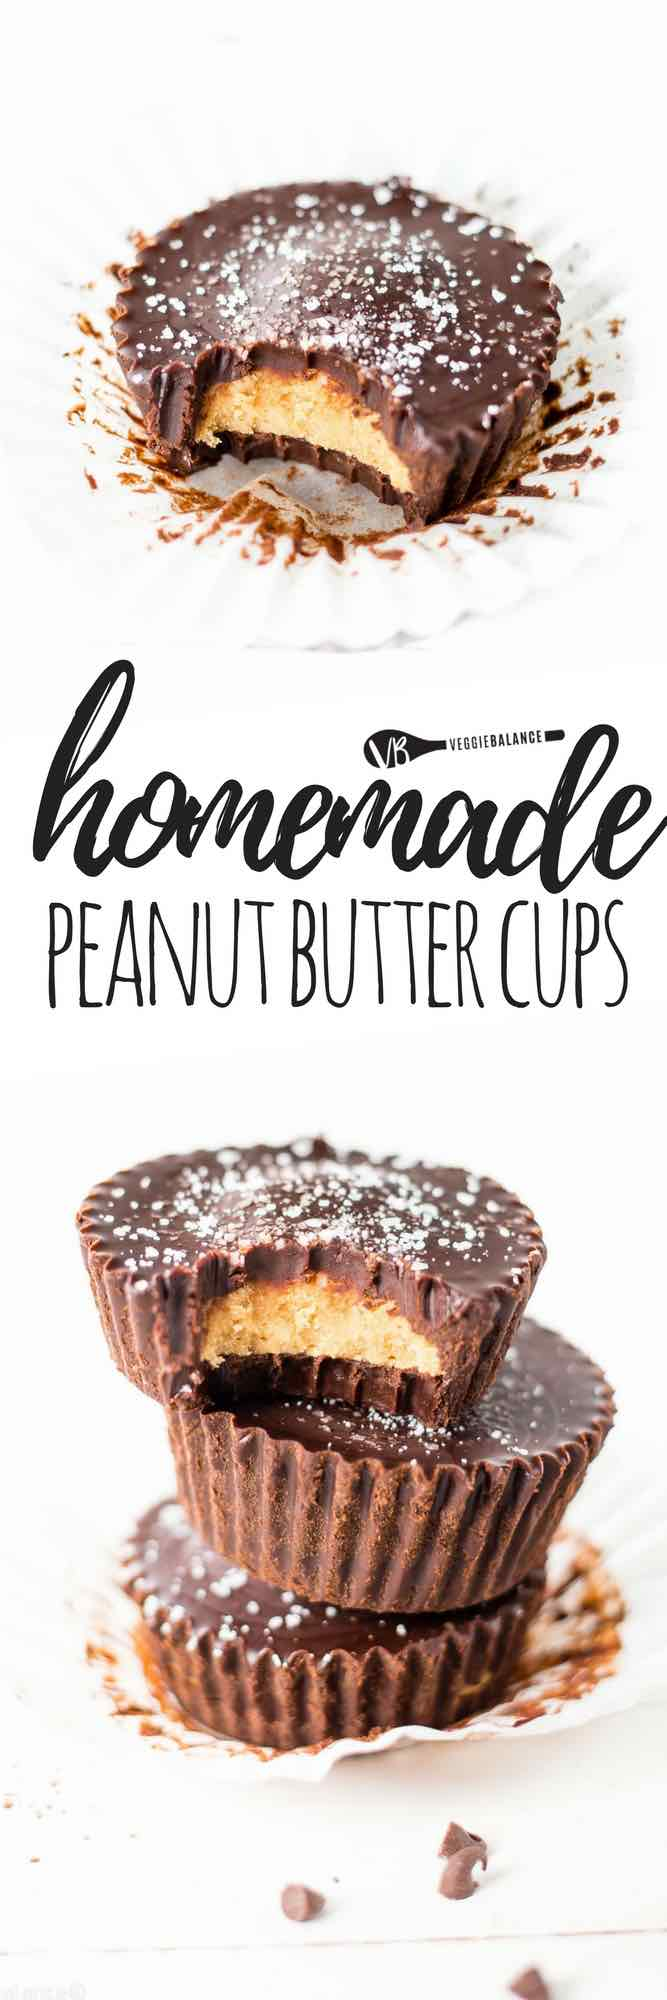 Homemade peanut butter cups recipe and how to make them in just 4 easy steps and teaching how to make natural from scratch chocolate. Healthy Peanut Butter Cups are the best! (Gluten-Free, Dairy-Free, Vegan, Vegetarian, Low-Sugar friendly)